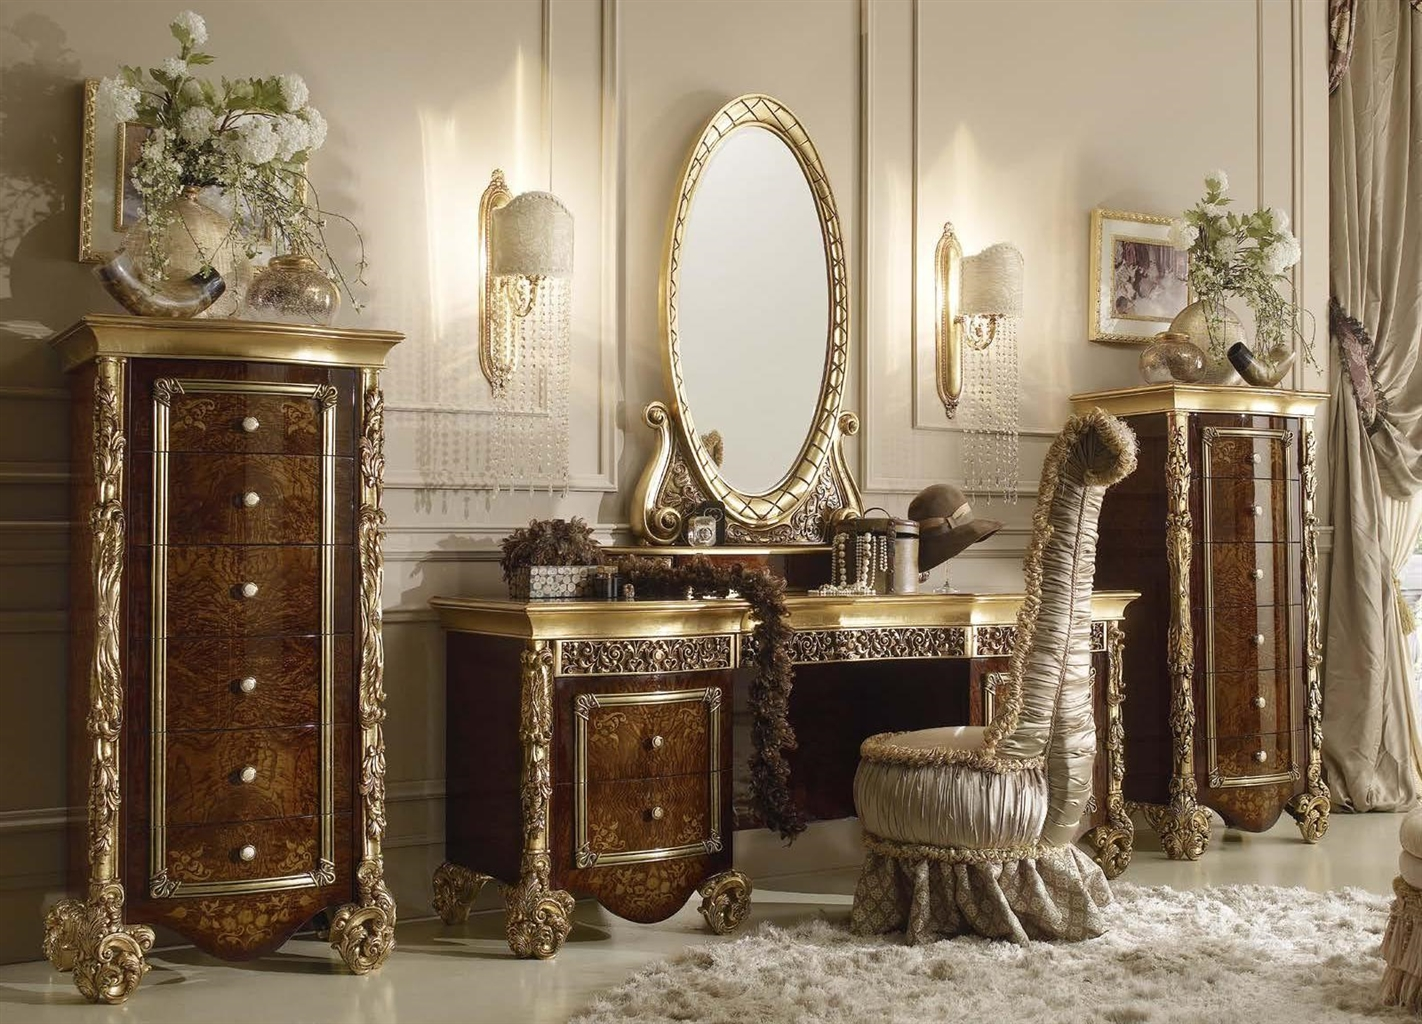 Luxury Makeup Vanity With Mirror Fit For A True Queen Or Princess